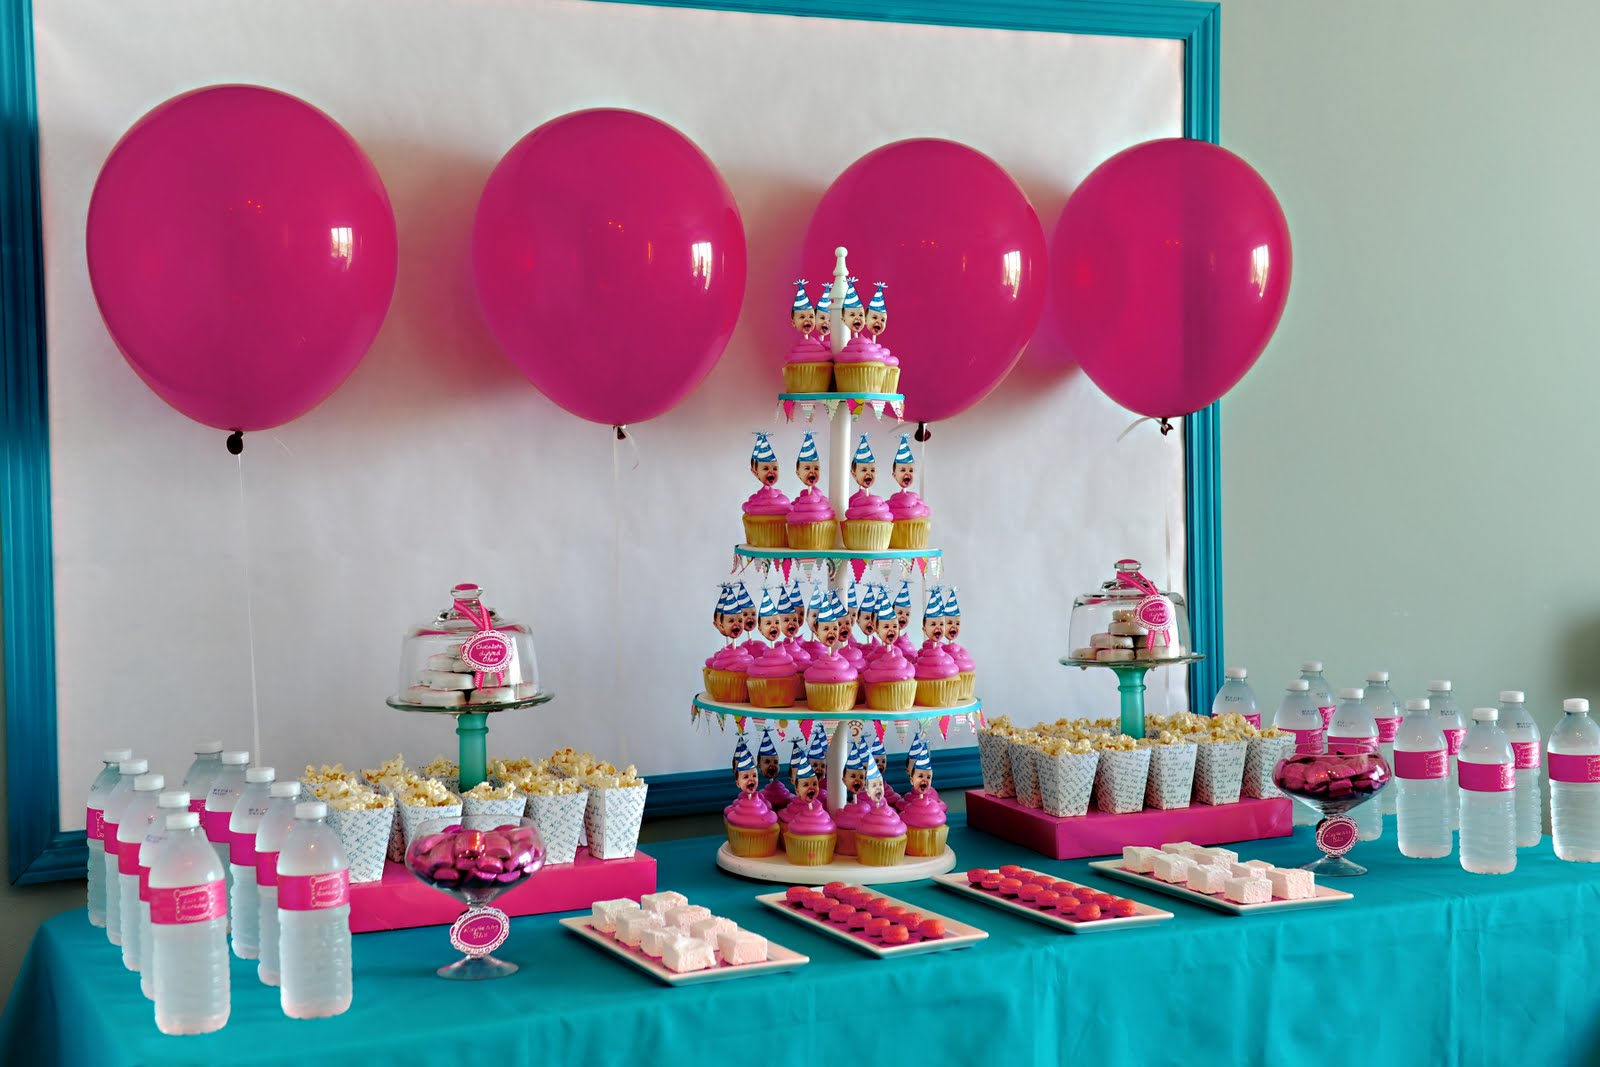 bella grace party designs: {real party} one year old in a flash